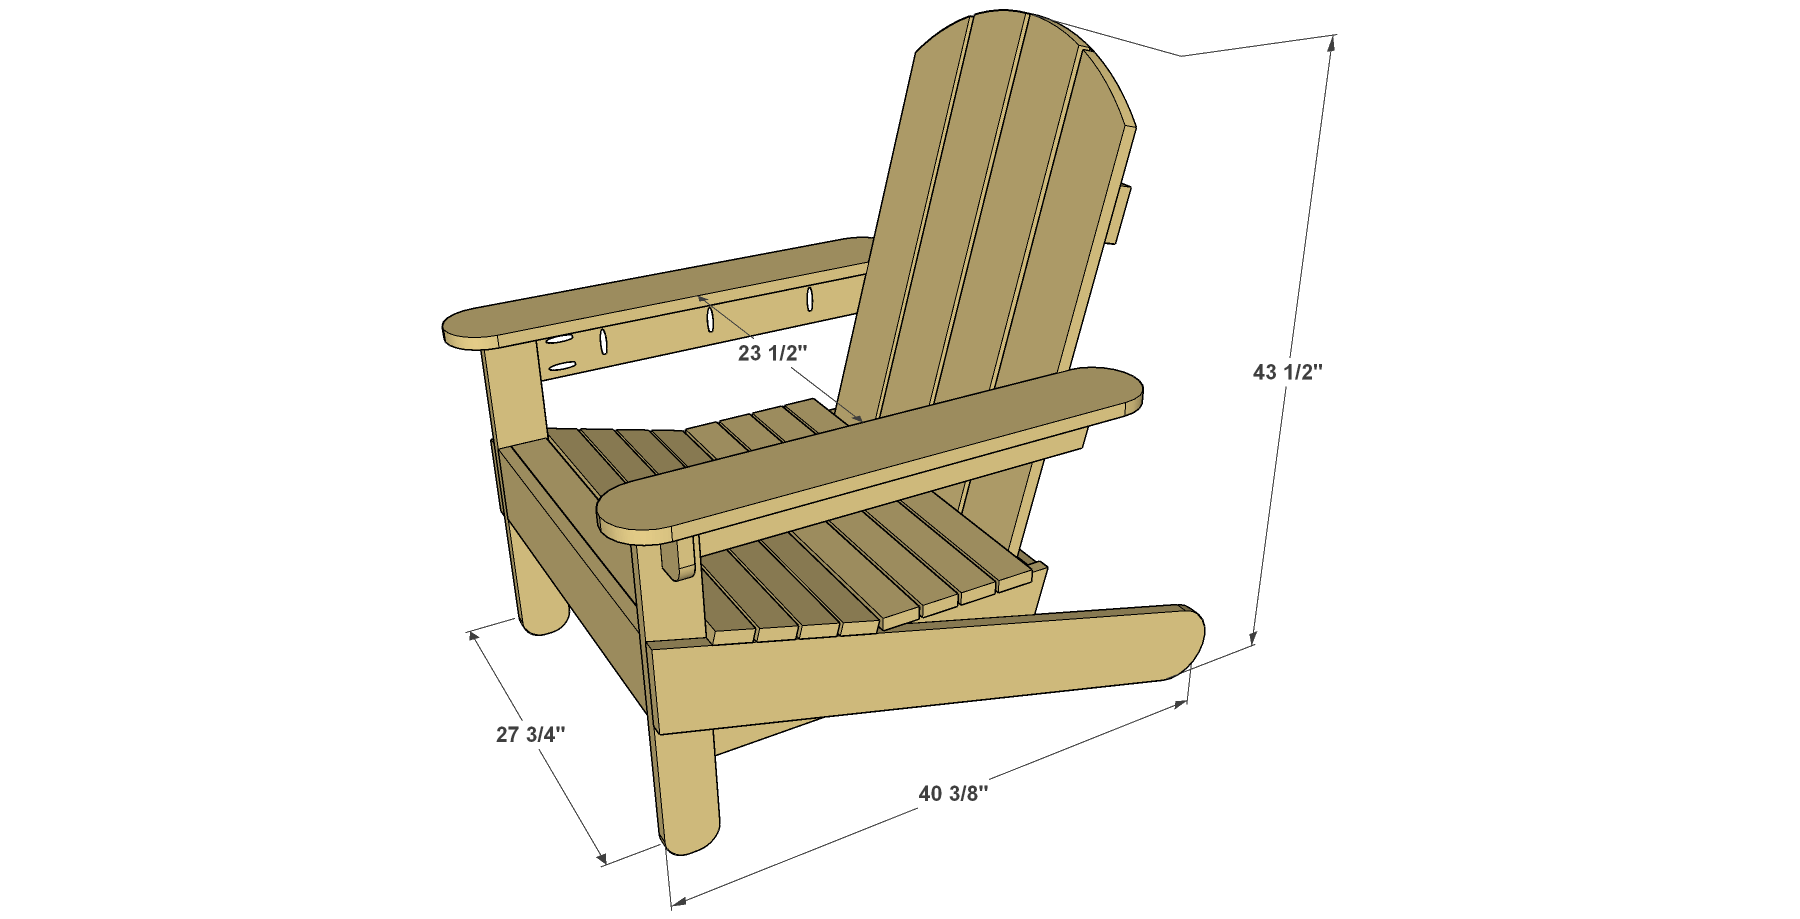 adirondack-chair-overall-with-dimensions